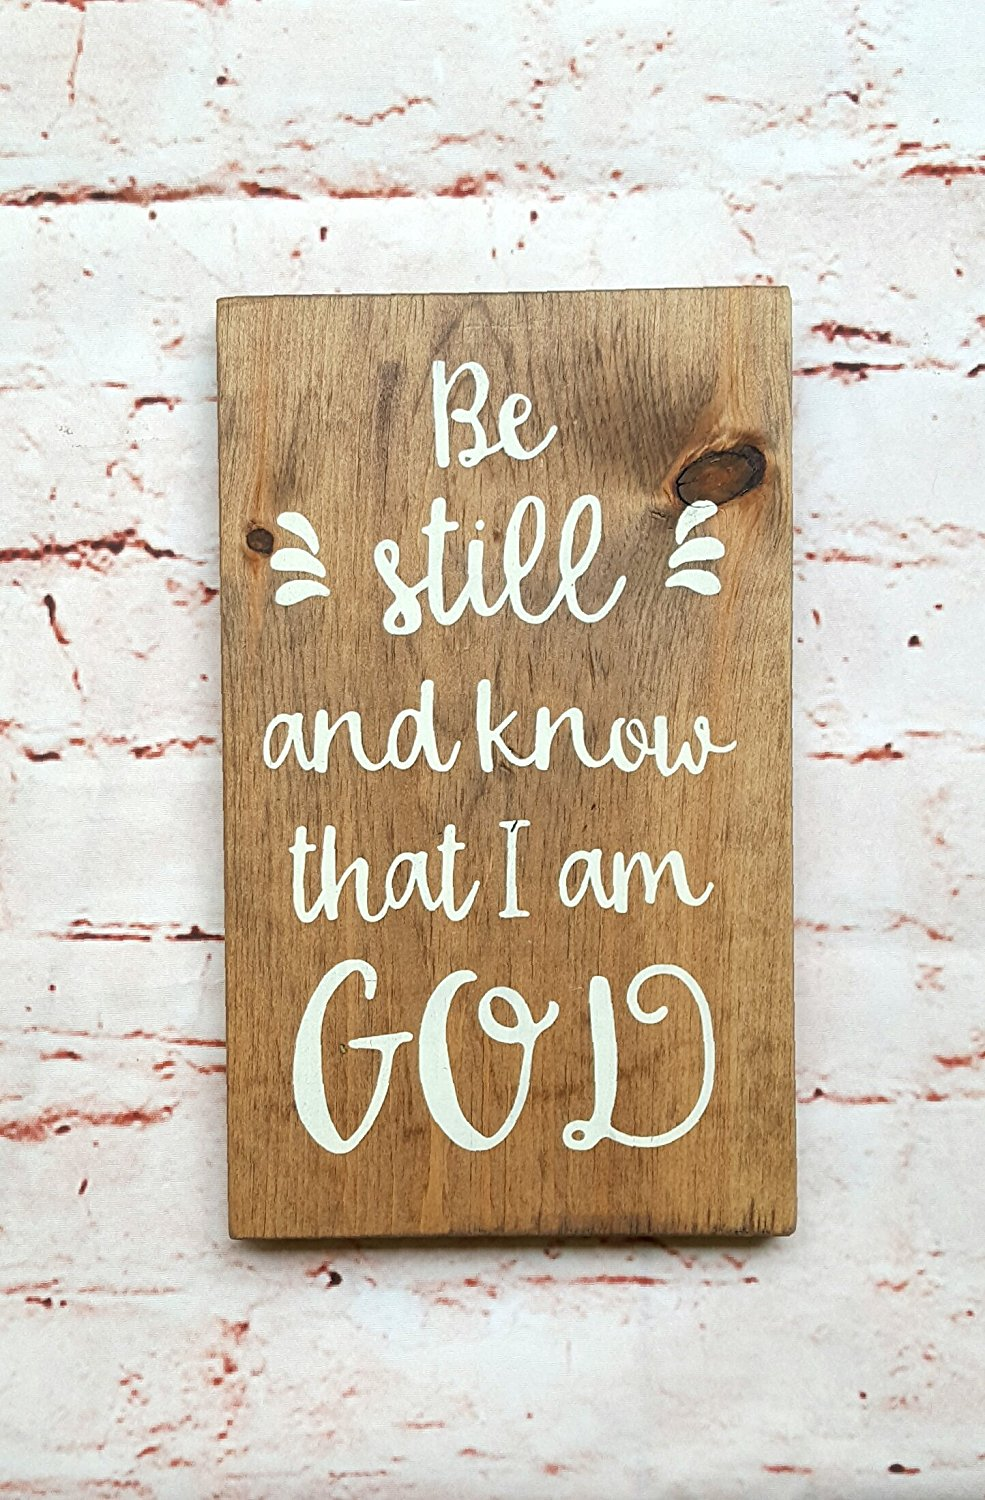 Be still and know, Wood wall art, Scripture wall art wood, Scripture wall decor, Gift for her, Wooden signs for home, Wood signs with quotes for home, Nursery wall decor